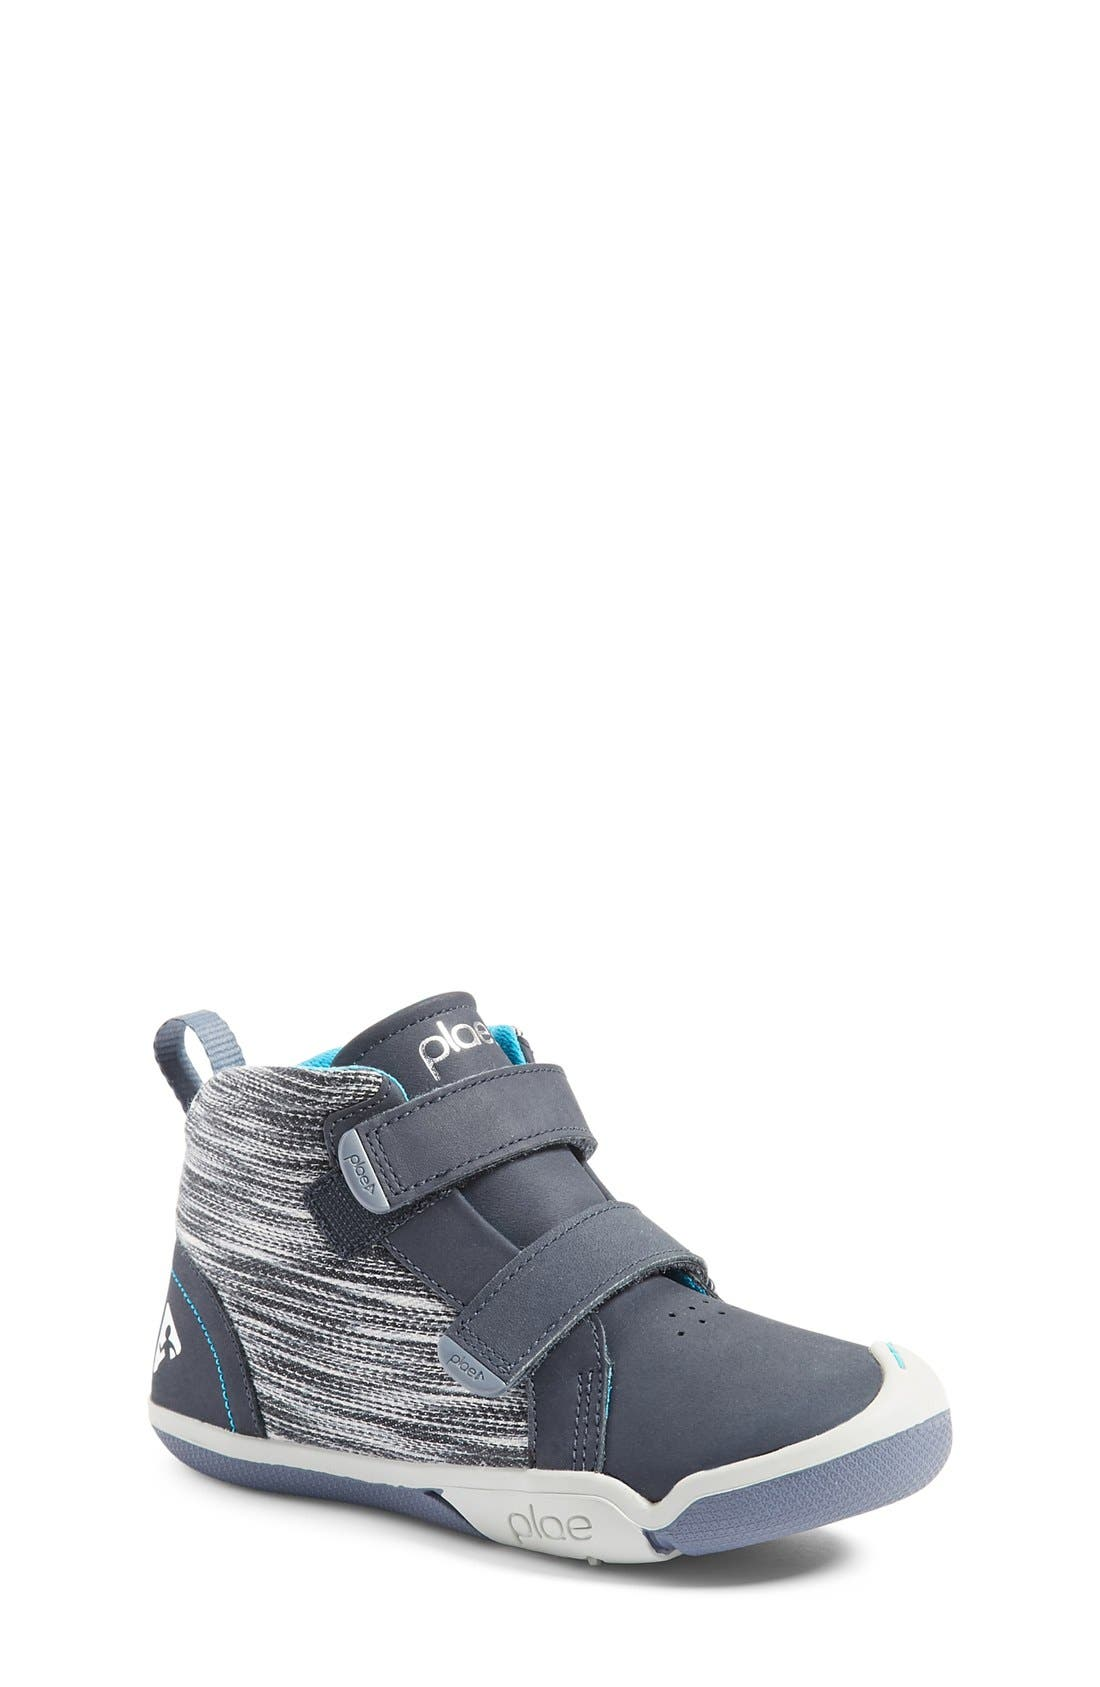 'Max' Customizable High Top Sneaker,                             Main thumbnail 1, color,                             Leather Wind